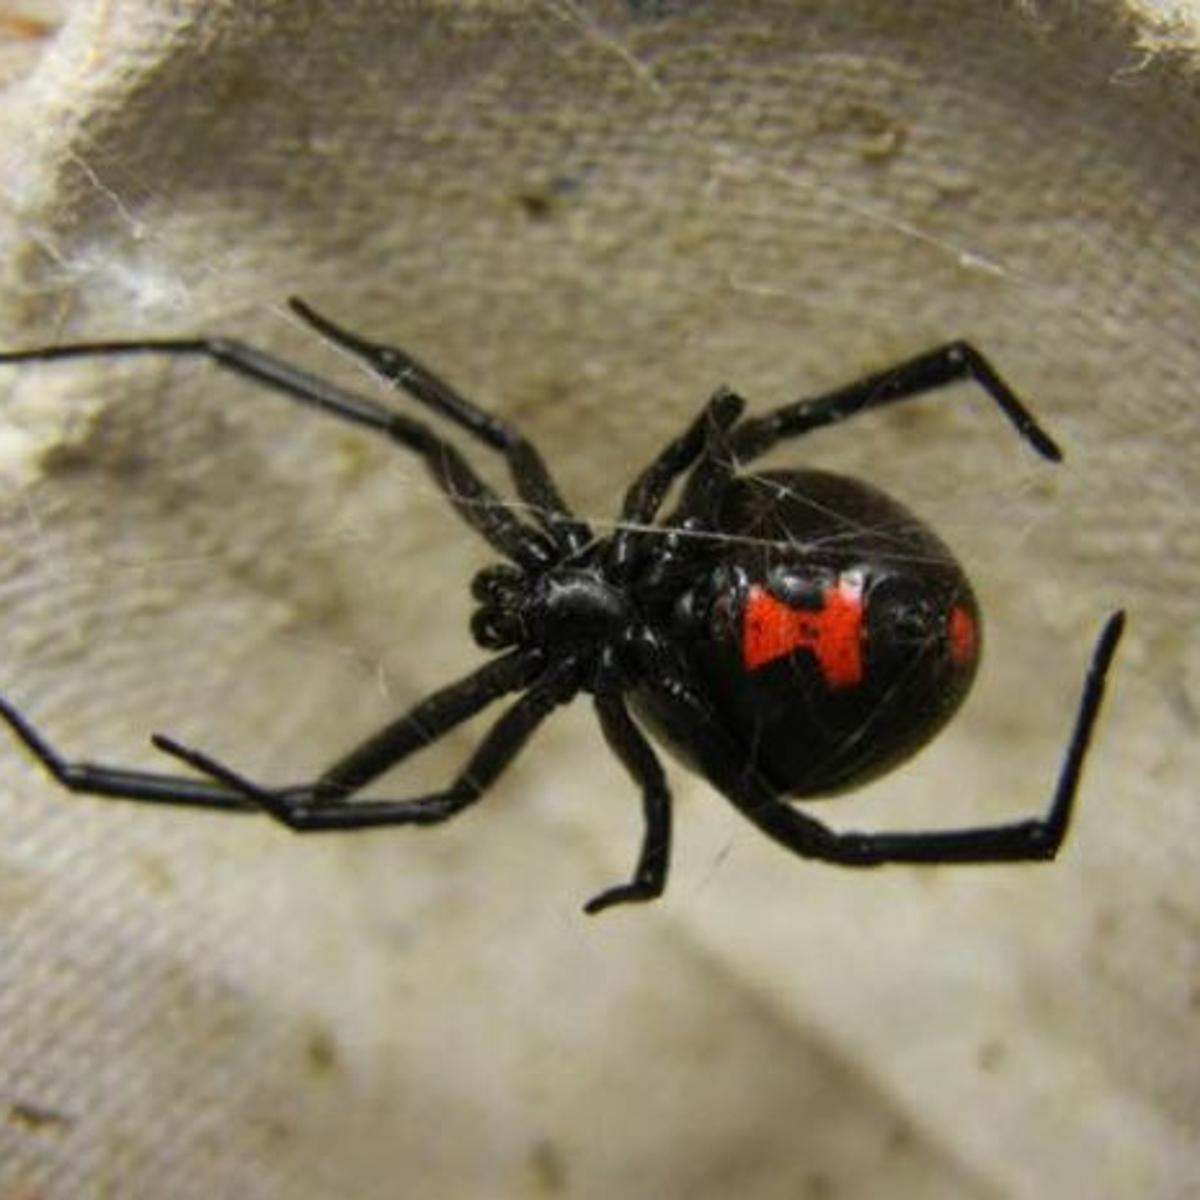 Green Thumbs: Seal off home, remove clutter to prevent black widow spiders  | Lifestyles | pressofatlanticcity.com